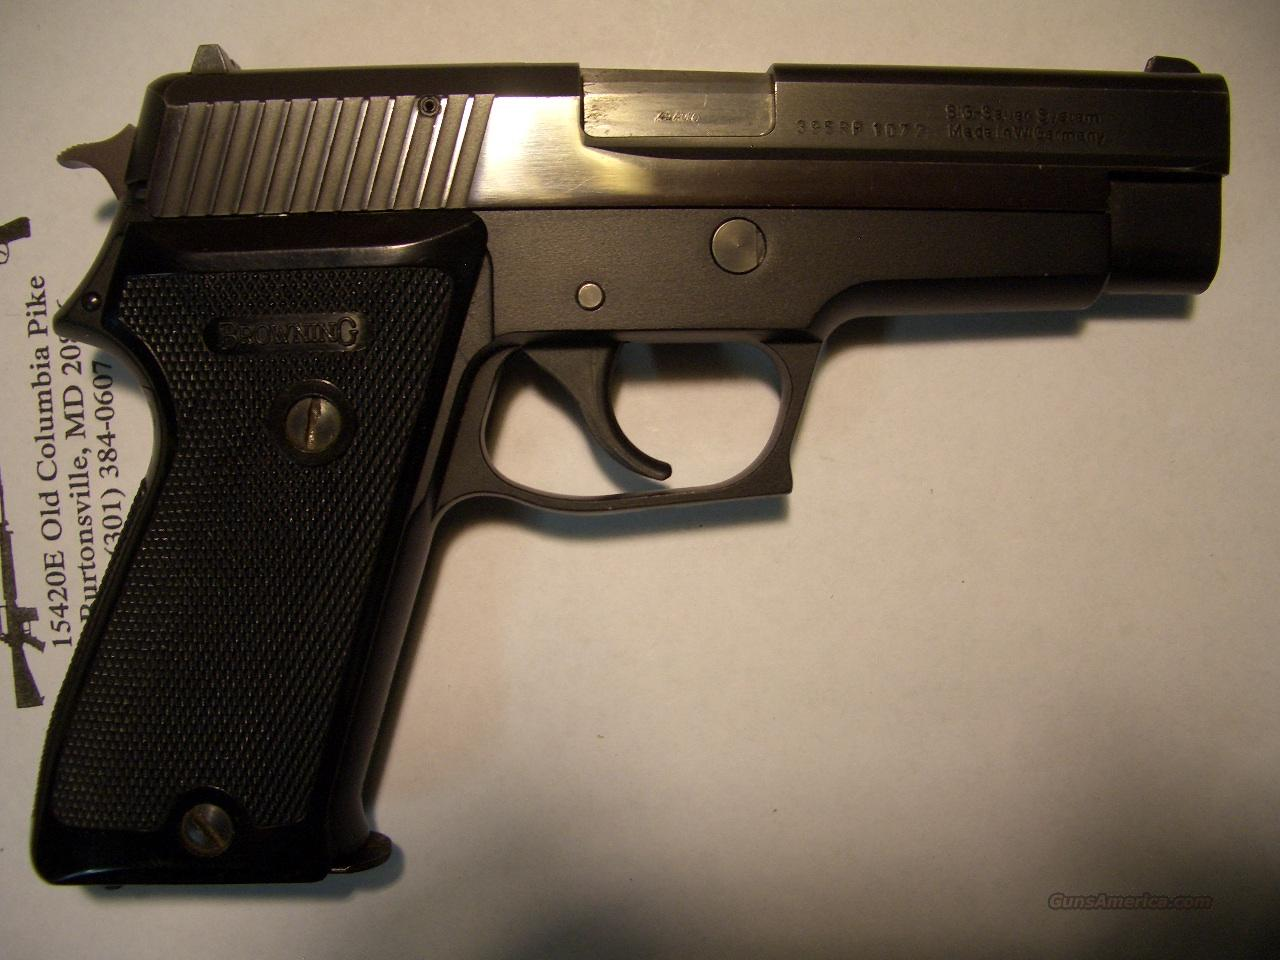 BROWNING/SIG SAUER P-220  .45ACP  Guns > Pistols > Browning Pistols > Other Autos